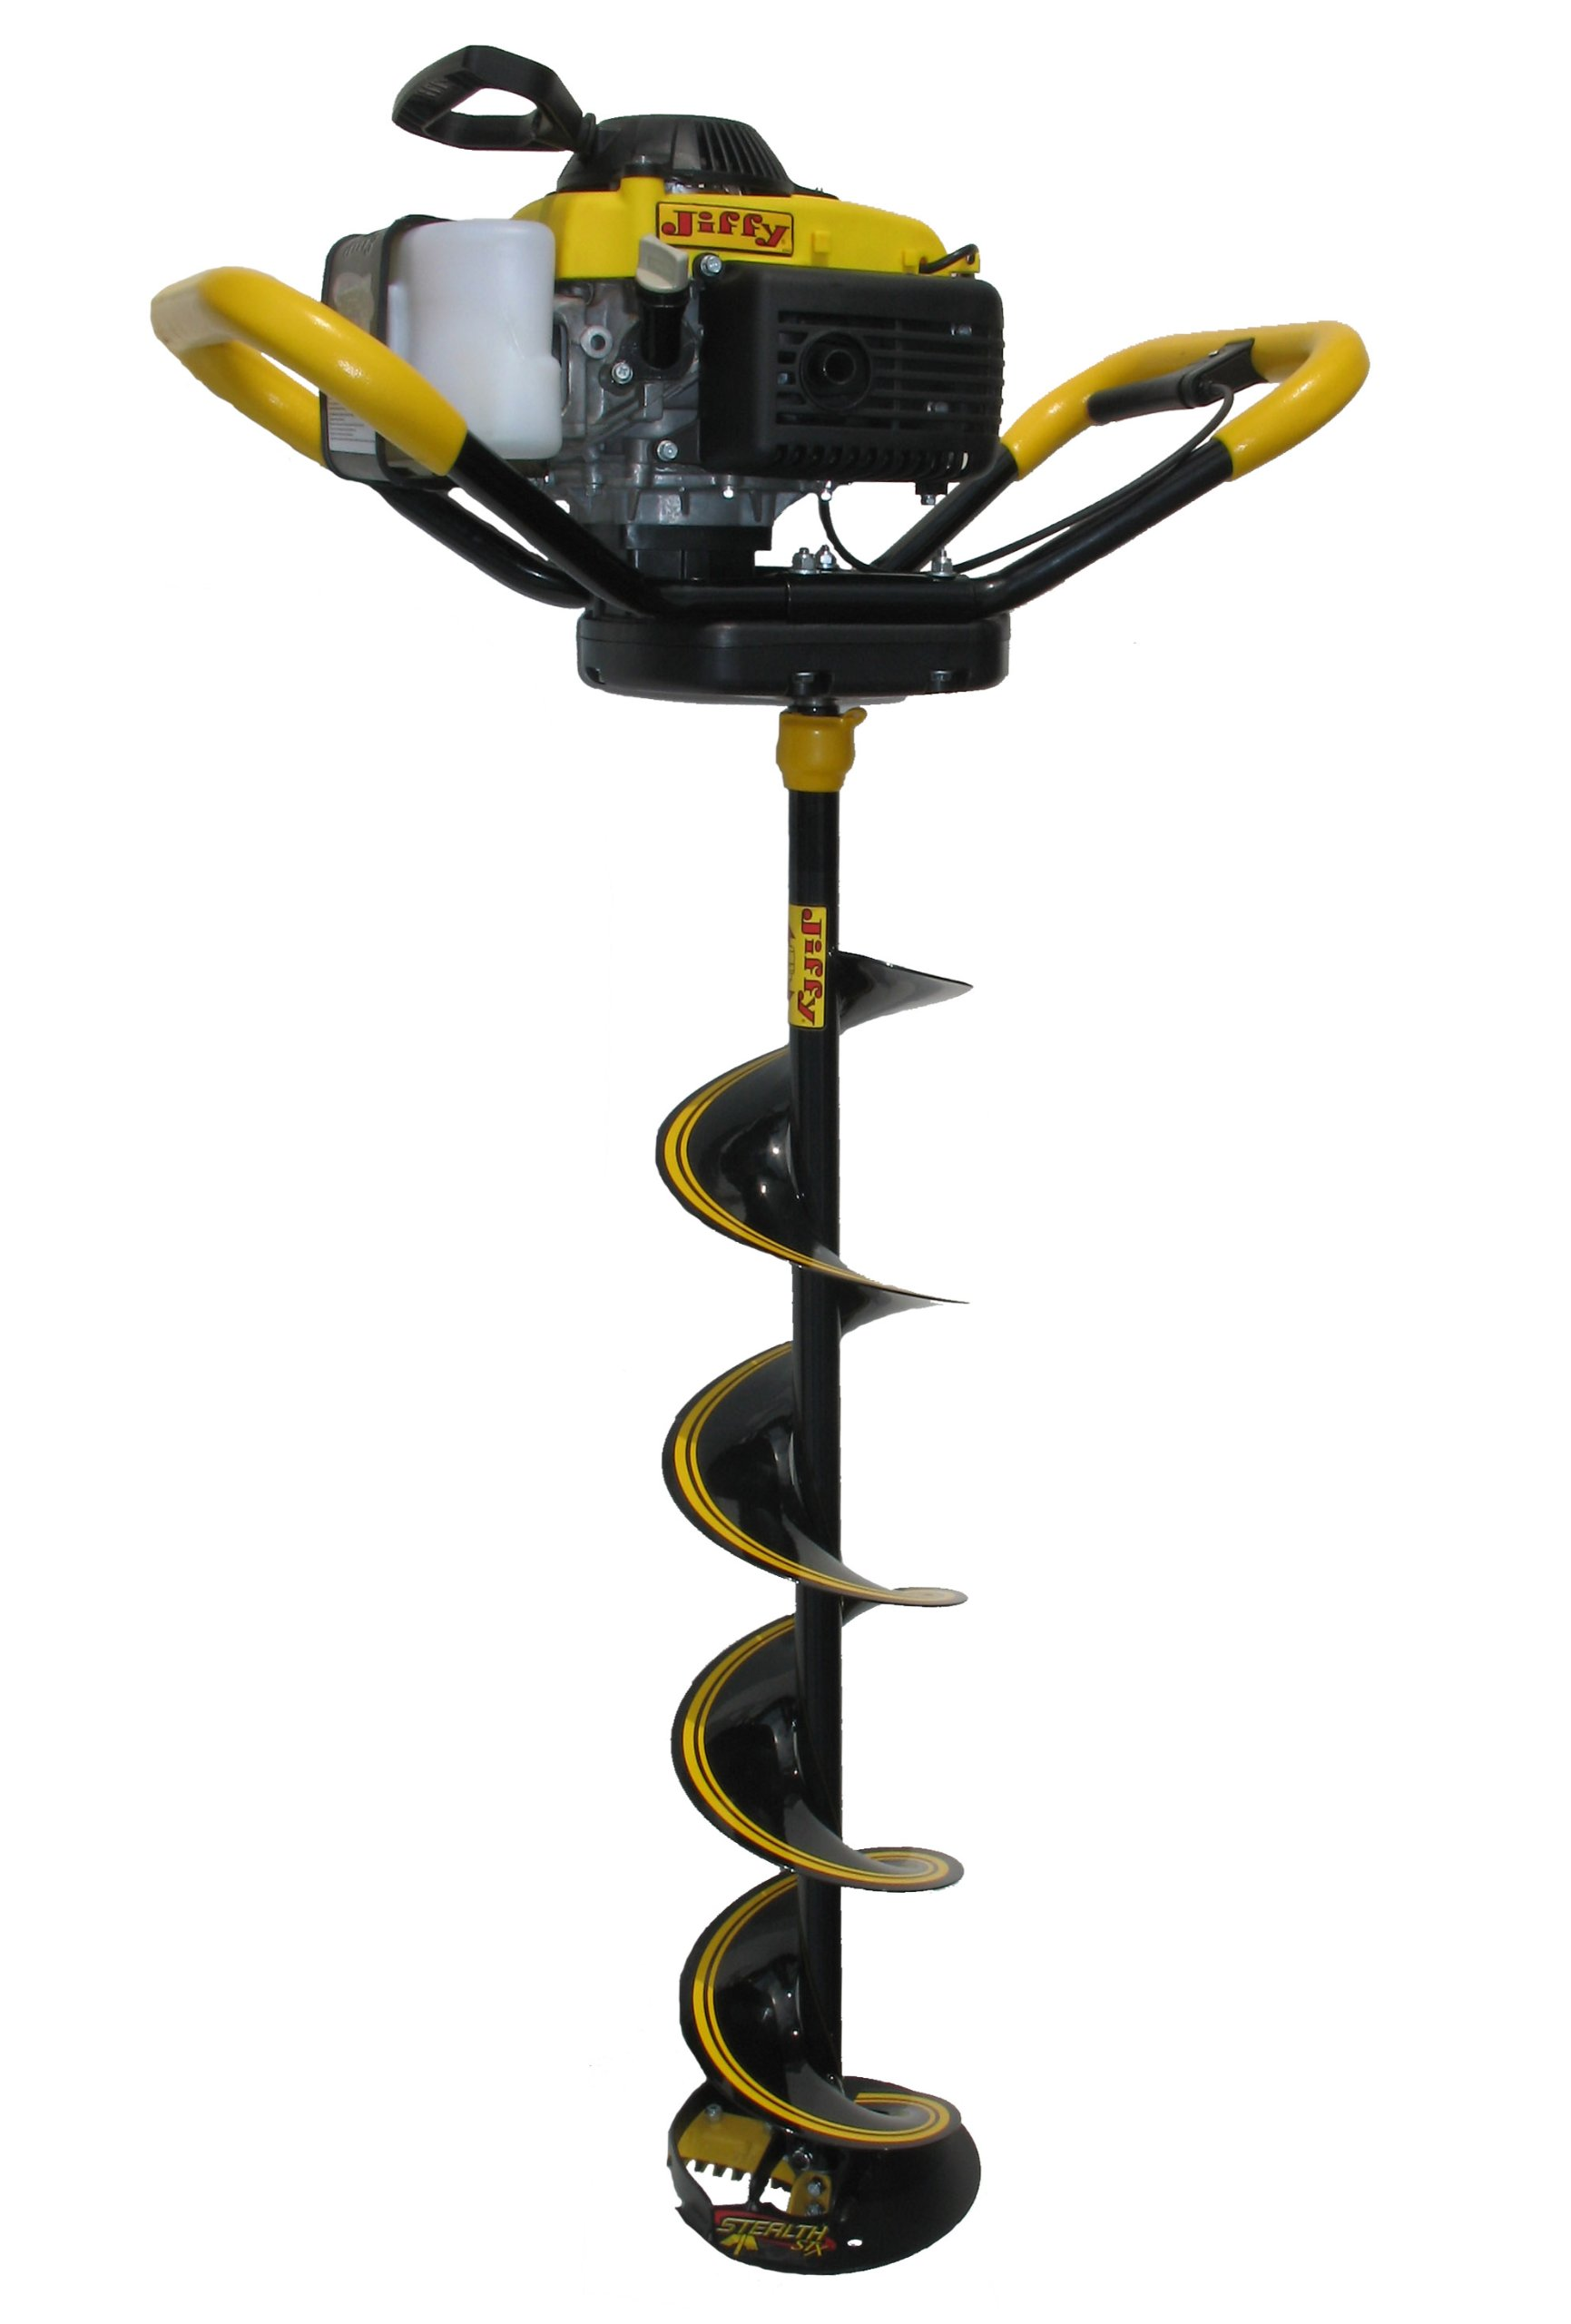 Jiffy 4G 4-Stroke Power Ice Auger